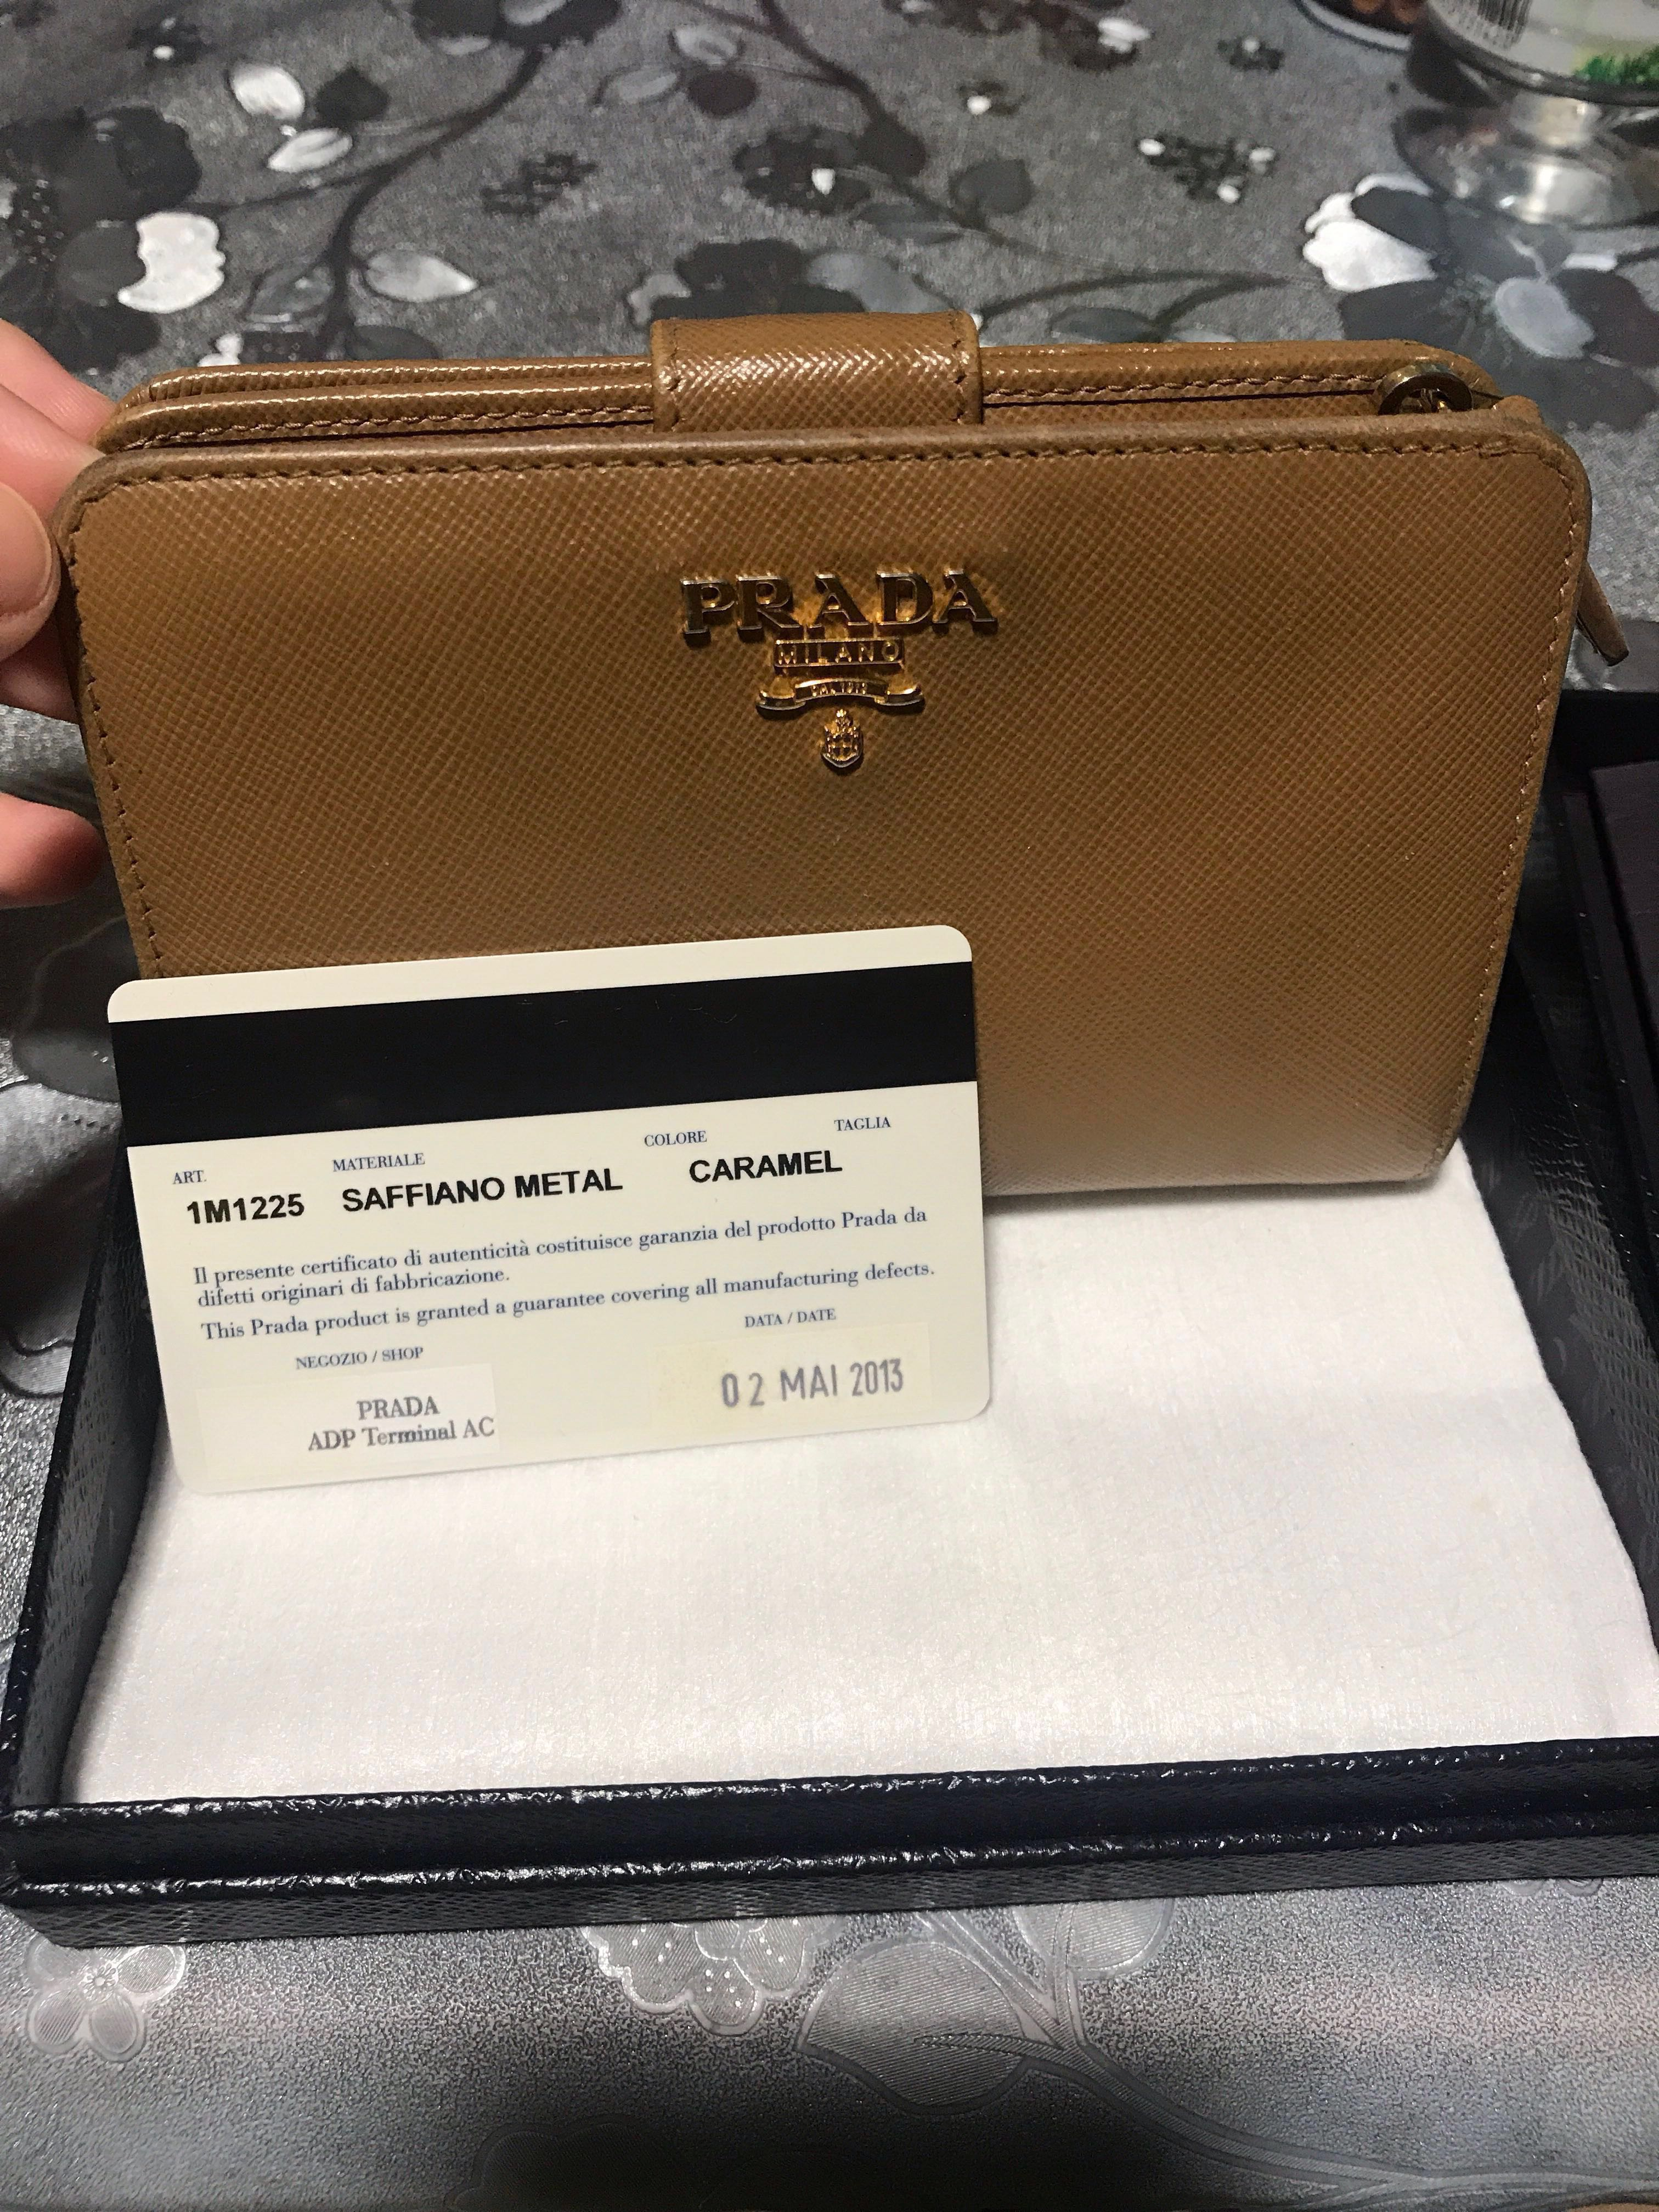 1de654c2fda4 ... wholesale authentic prada saffiano metal wallet in caramel womens  fashion bags wallets wallets on carousell 15e38 ...